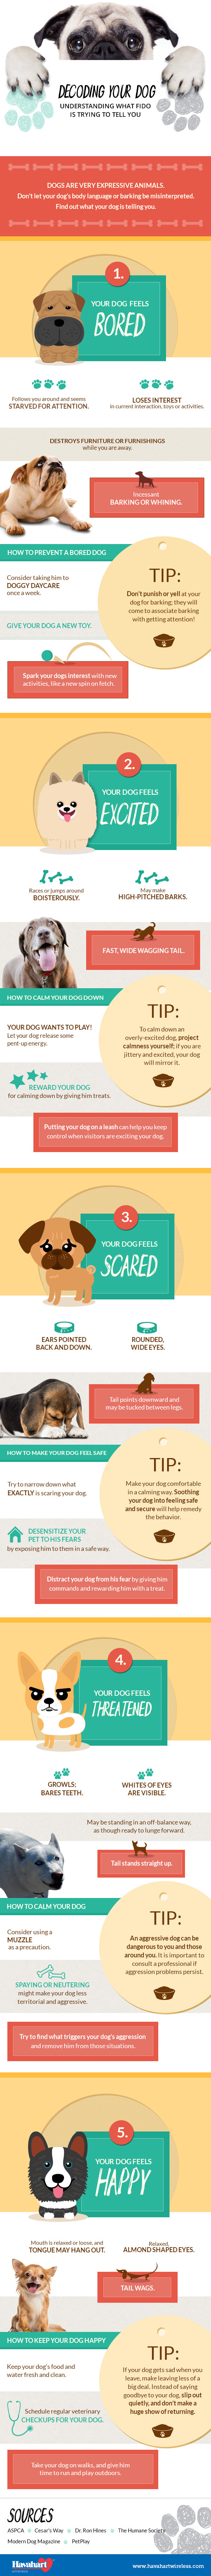 Understanding Your Dog's Body Language Infographic